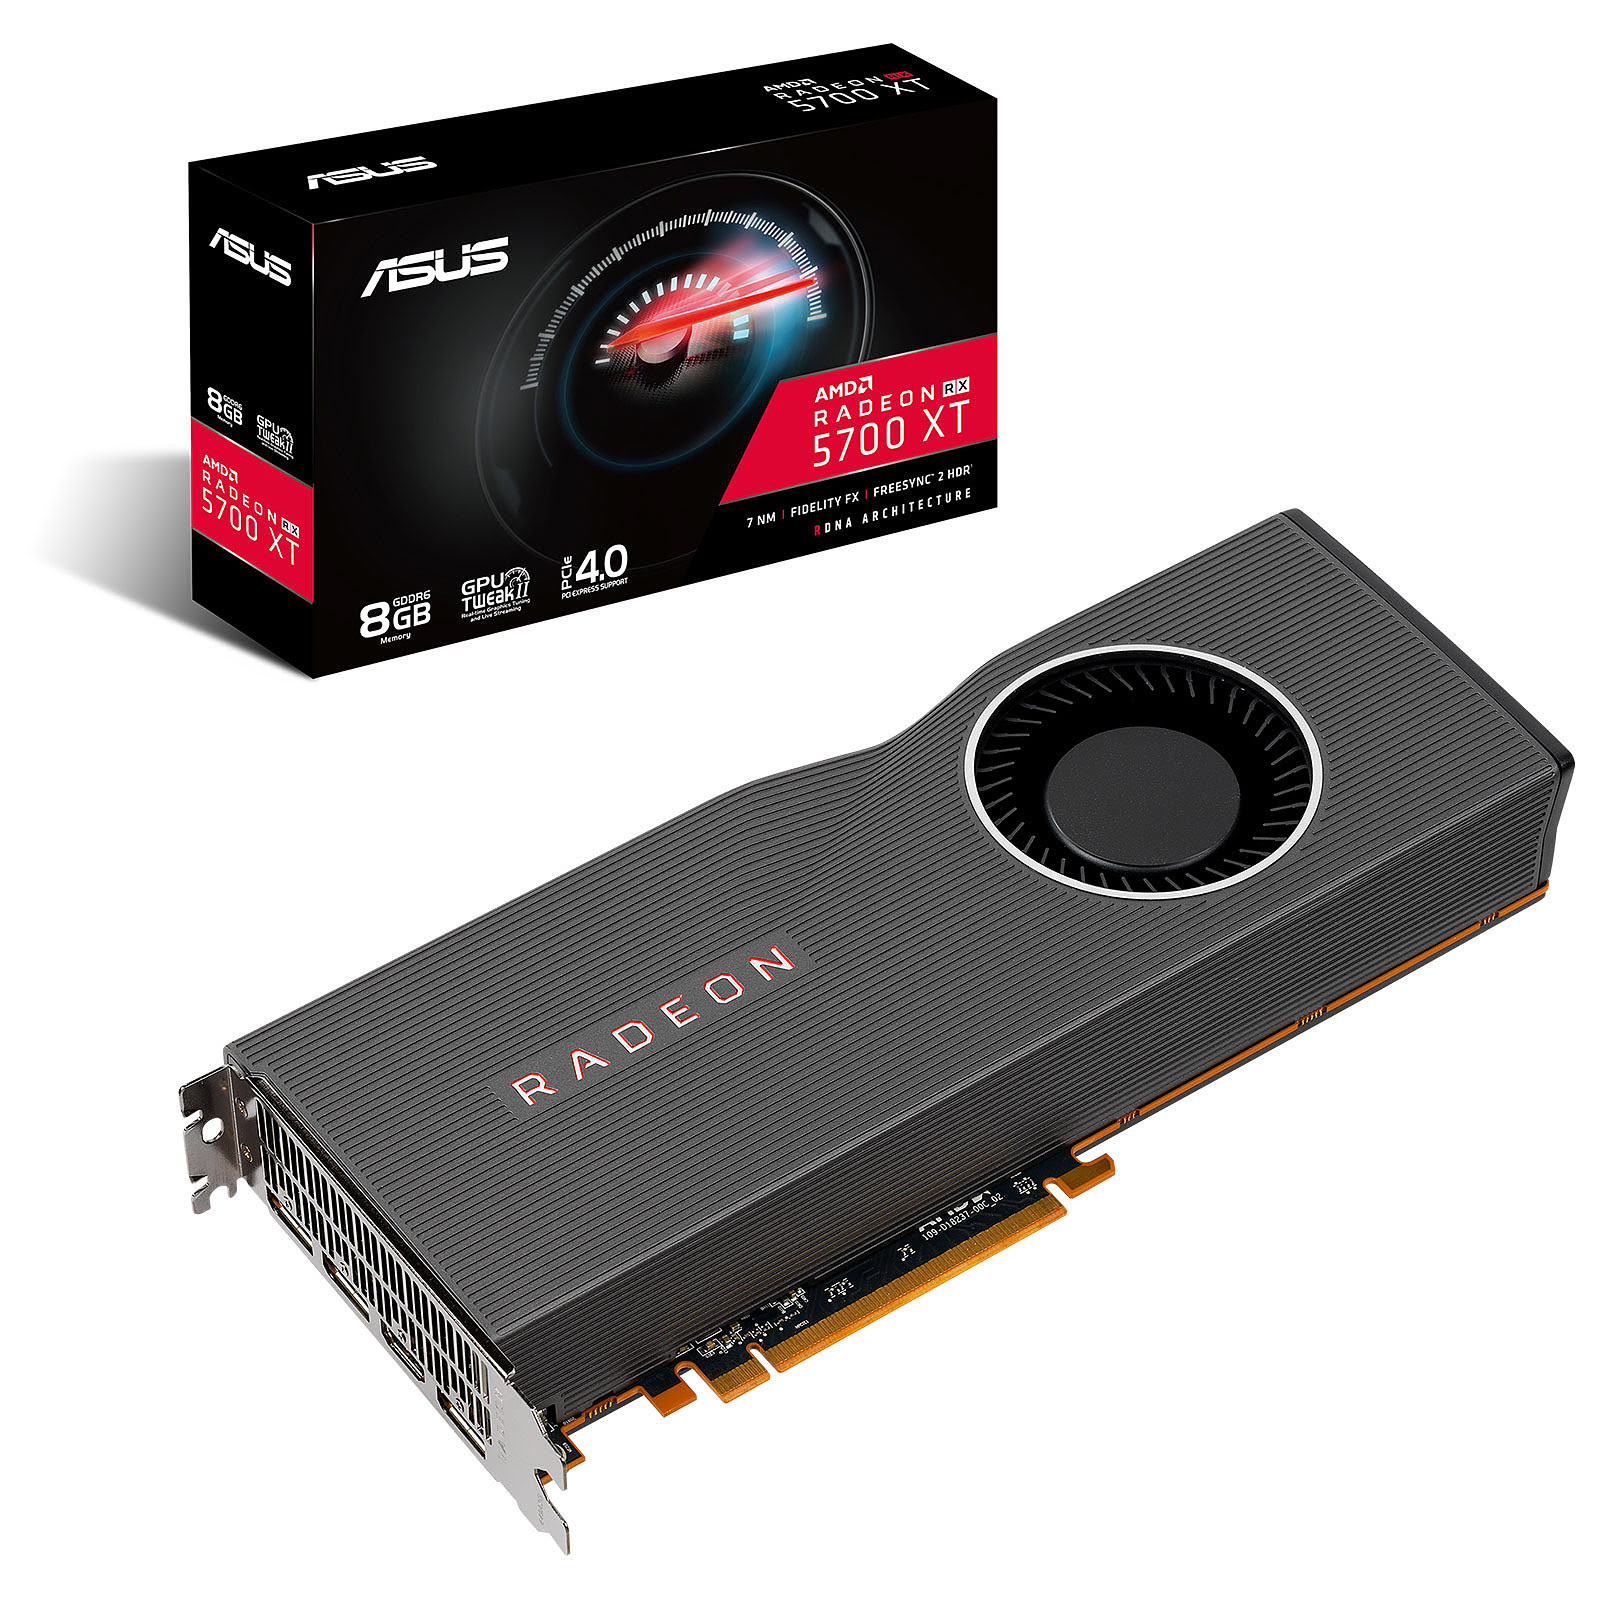 Carte graphique Asus RX5700XT-8G - RX5700XT/8Go/HDMI/DP